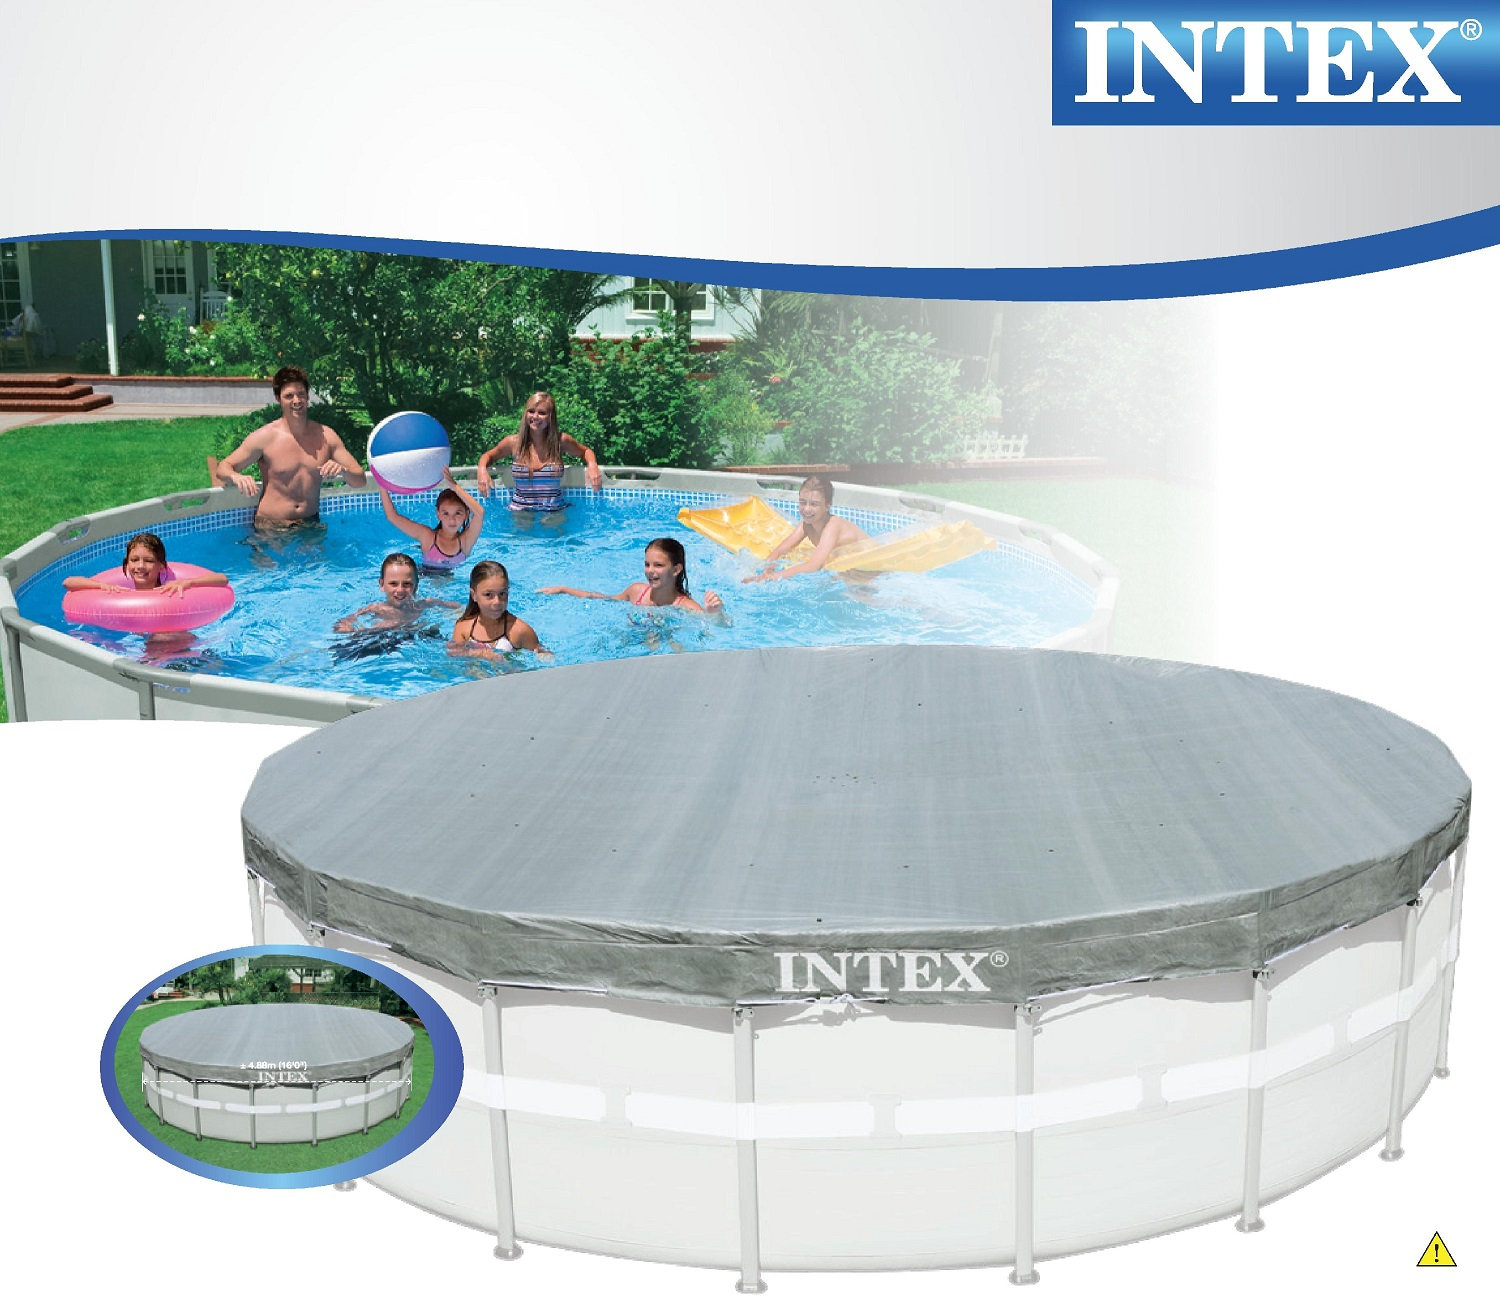 Poolabdeckung Winter Intex Pool Abdeckplane Pool Abdeckplane Pool Cover F R Frame